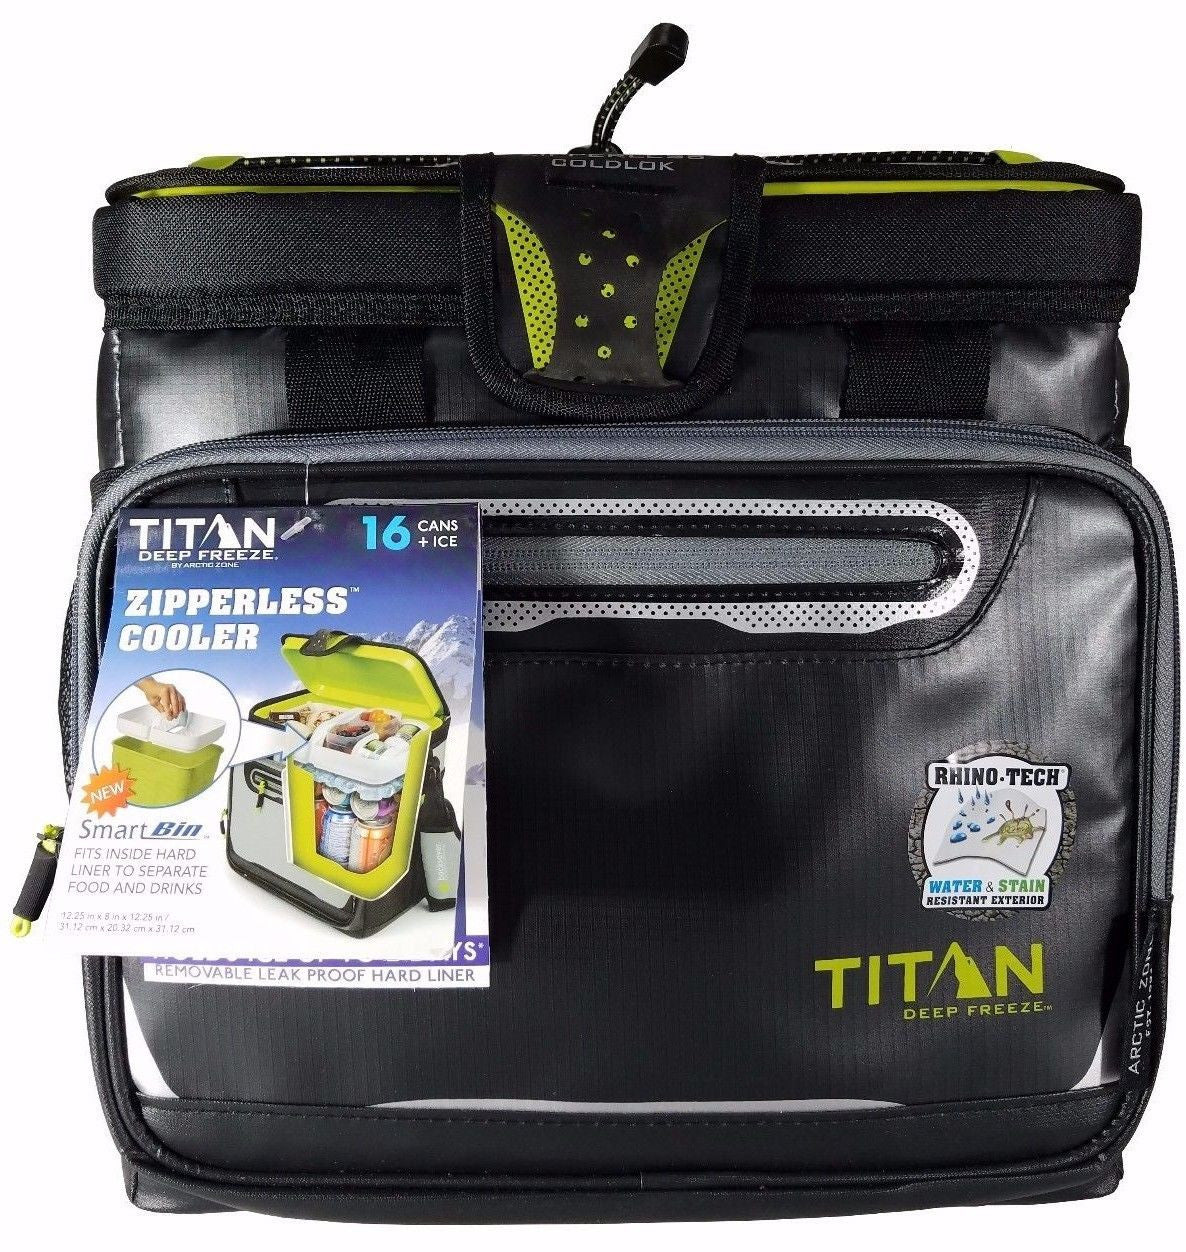 Titan Deep Freeze Zipperless Cooler by Arctic Zone 16 Cans+Ice with Bin - Black